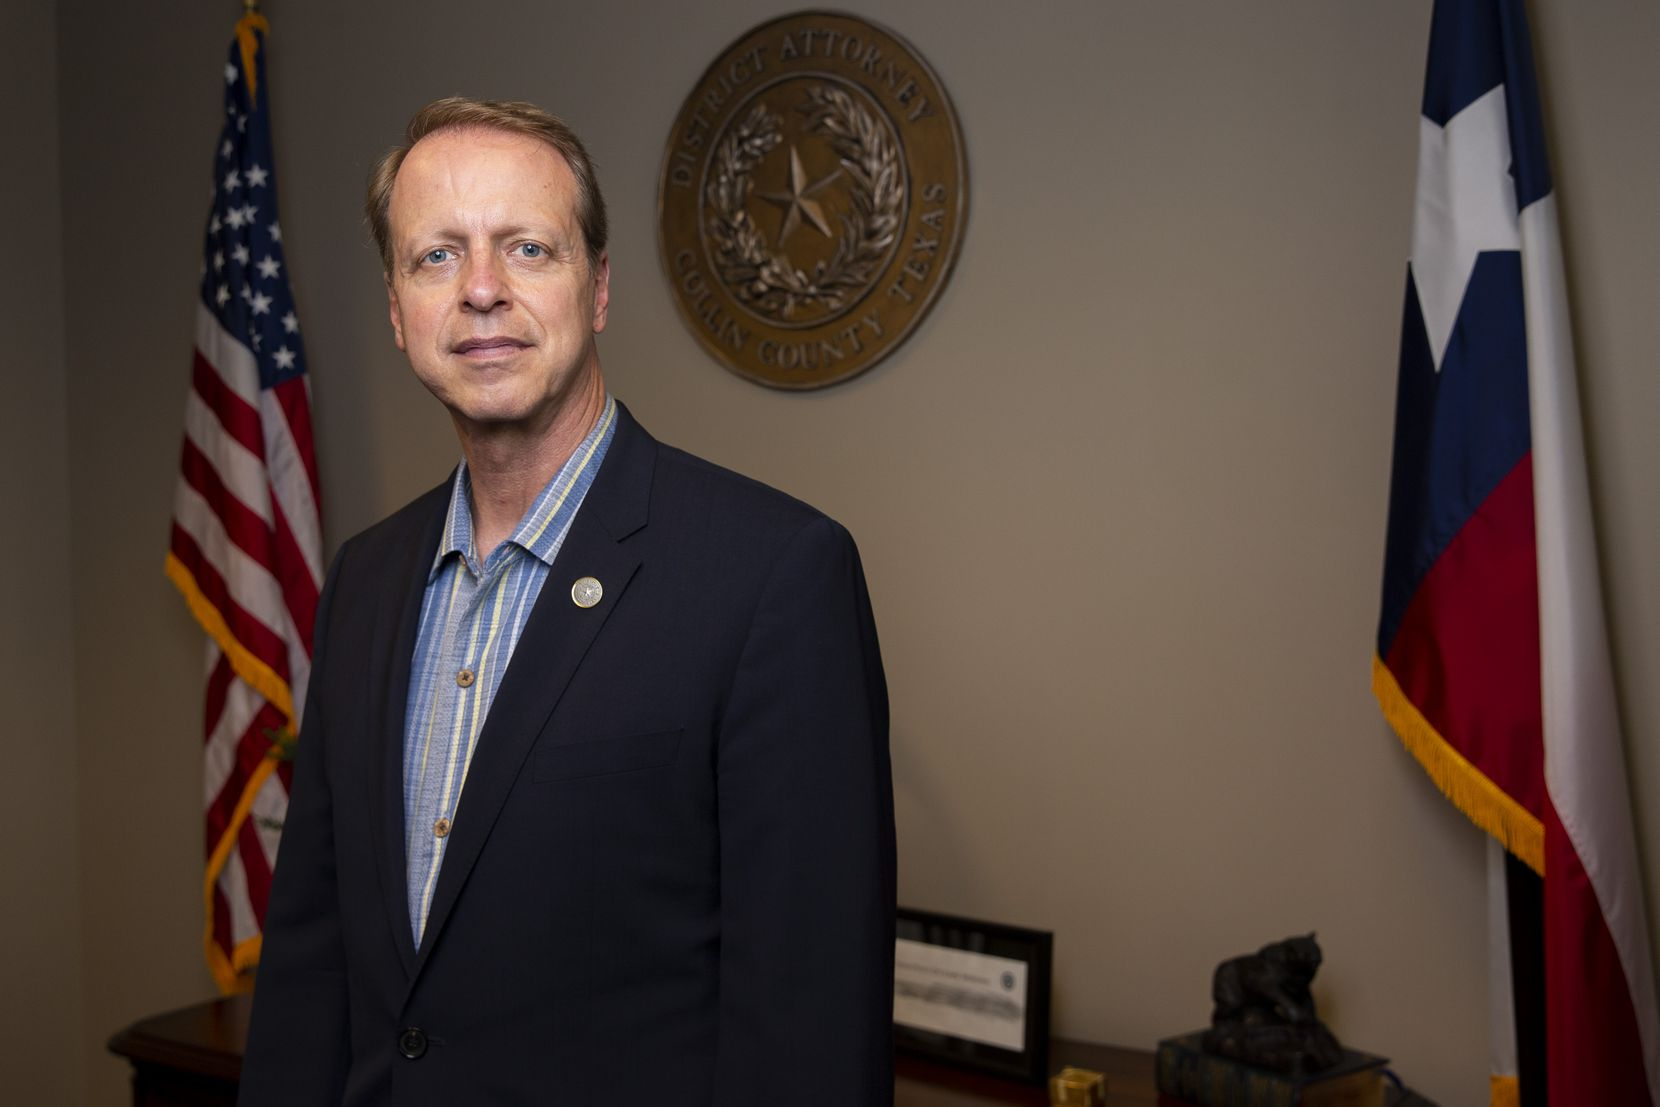 Collin County DA Greg Willis poses for a photo in his office on Wednesday, June 23, 2021, at the Collin County Courthouse in McKinney.